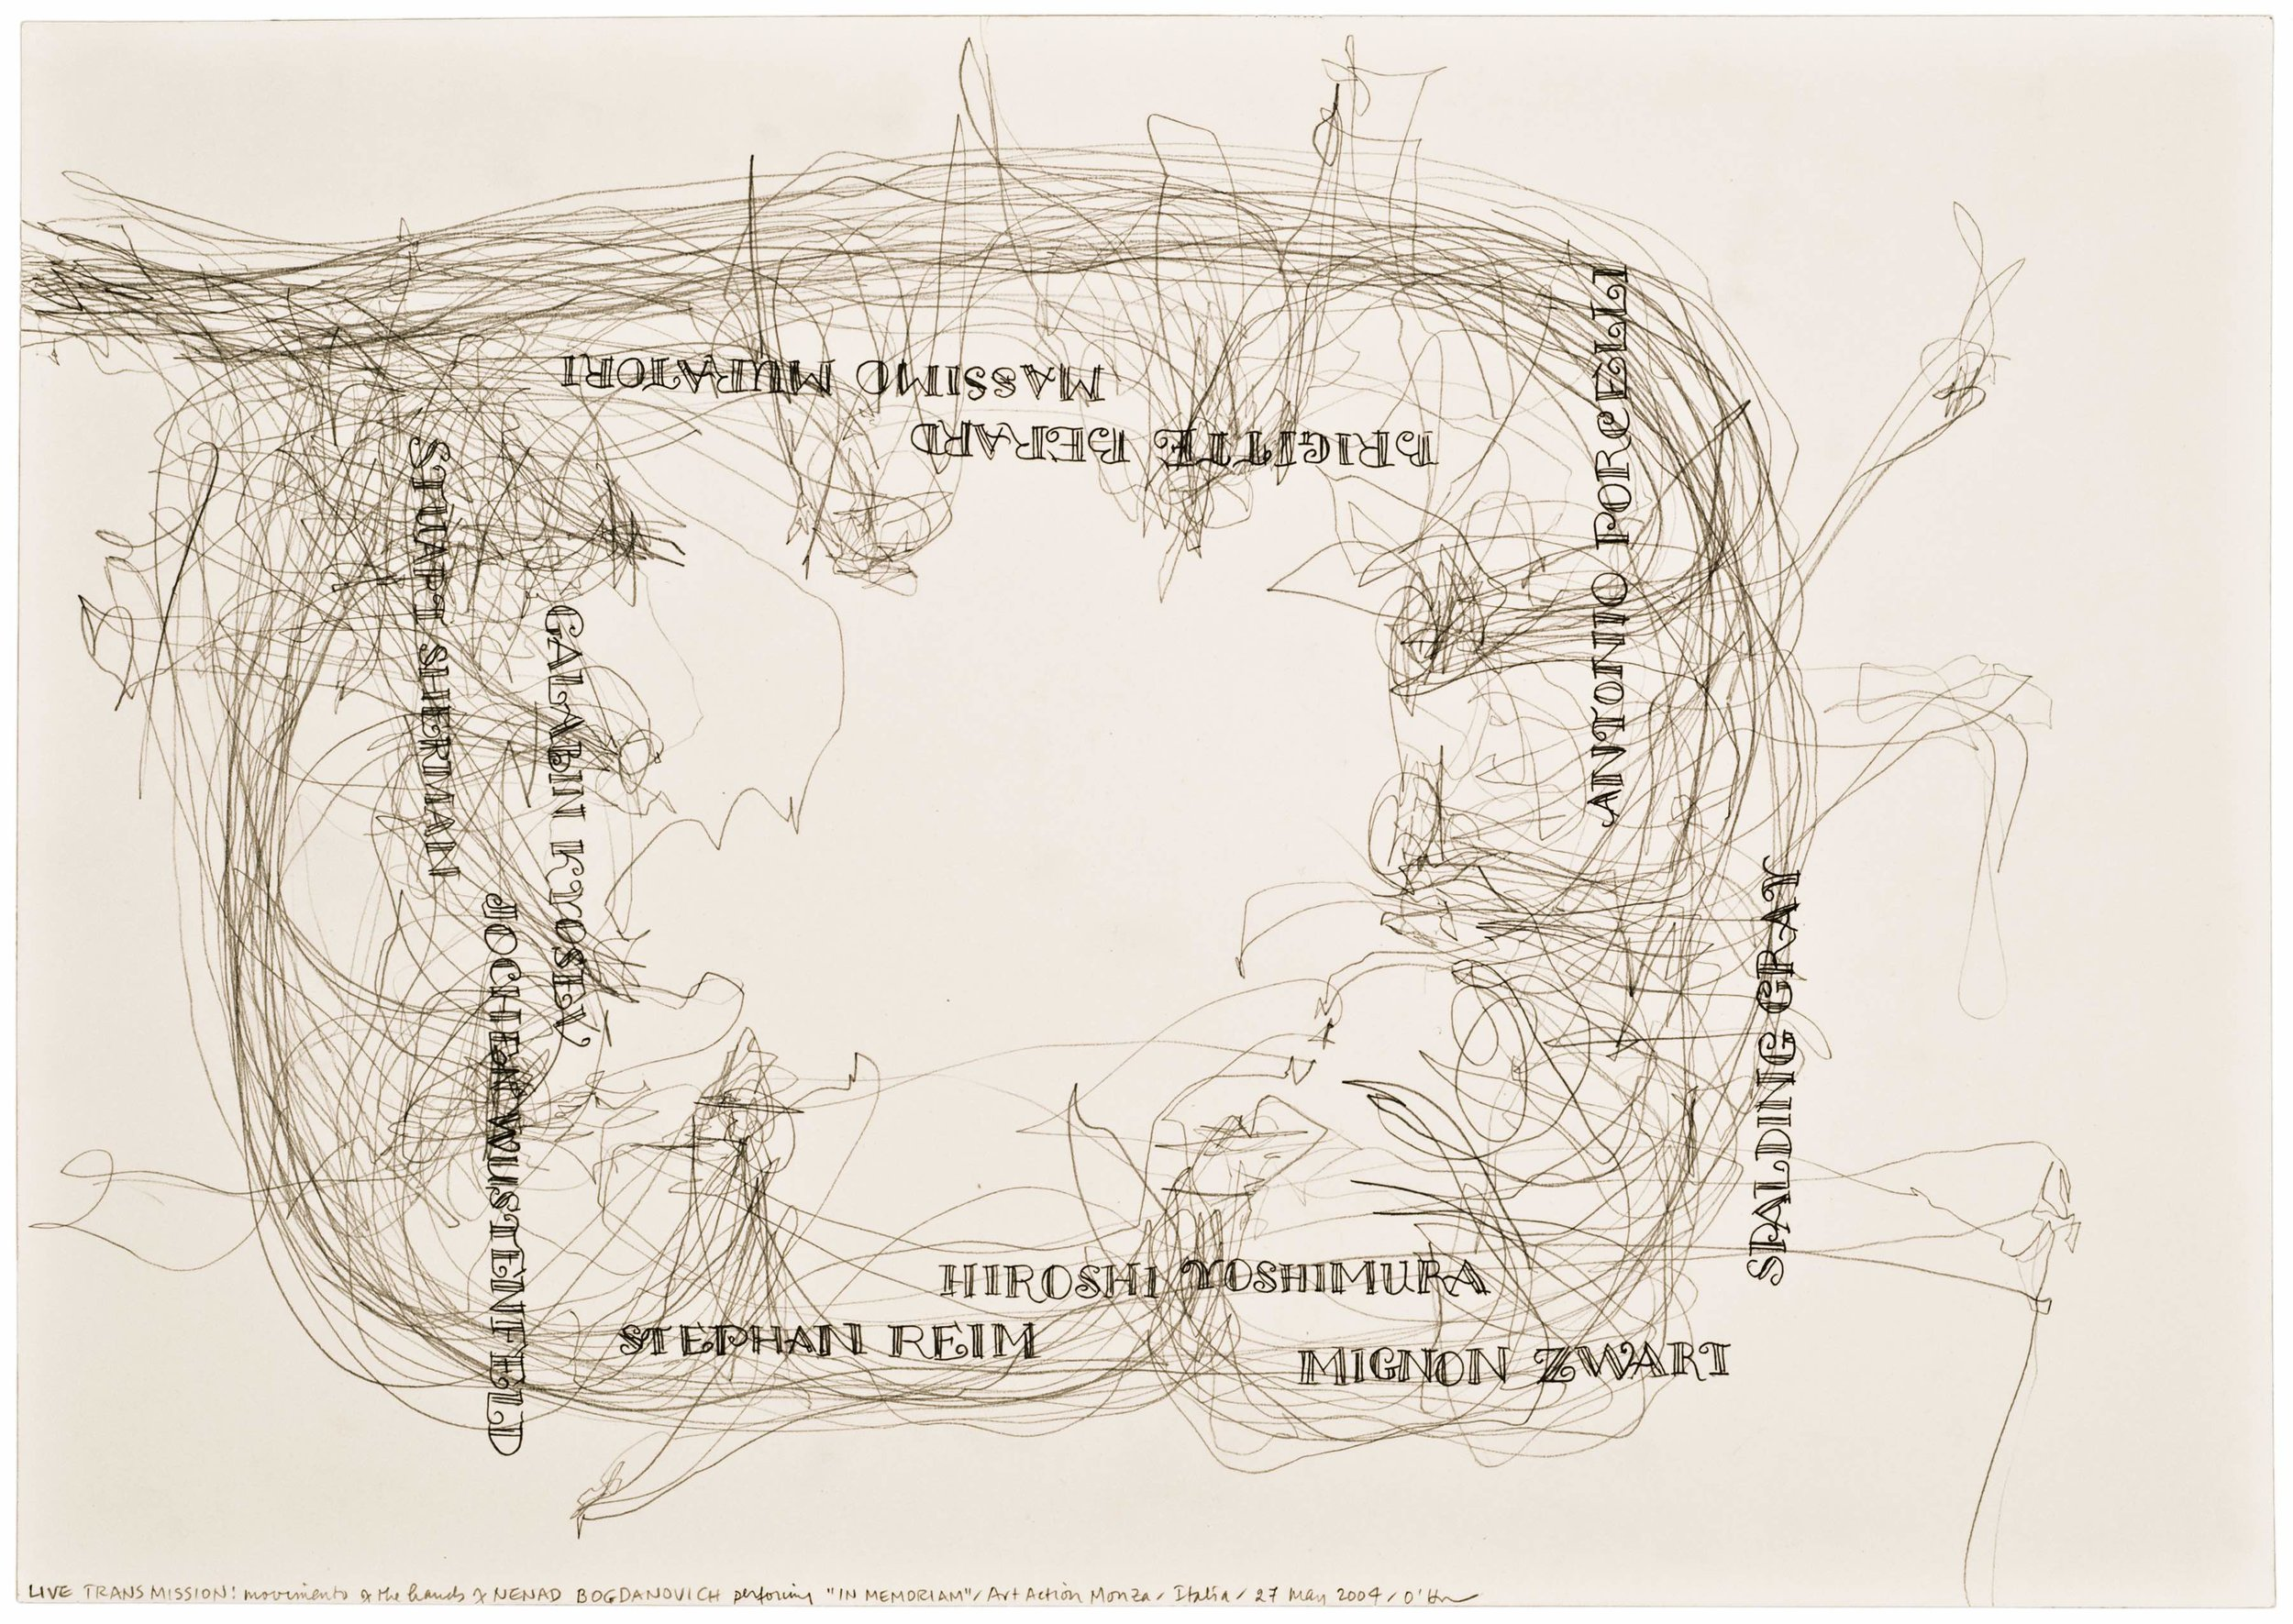 Morgan O'Hara, LIVE TRANSMISSION: movement of the hands of NENAD BOGDANOVICH performing In Memoriam / Art Action Monza / Italia / 27 May 2004 ,11.5 x 16.5 in.,Graphite on Bristol paper, 2004